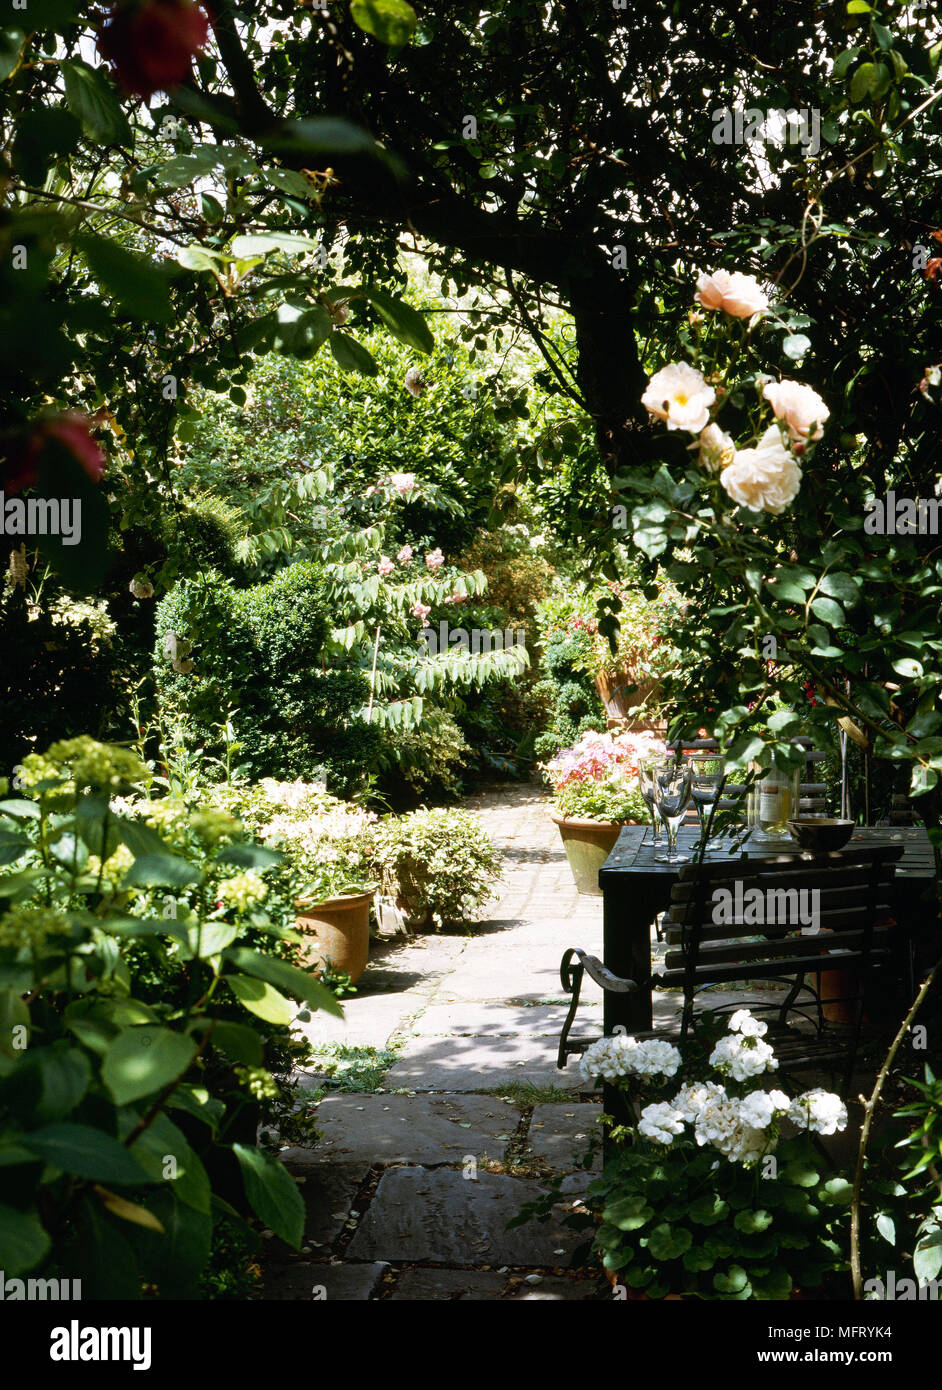 Garden Detail Paved Patio Area Wooden Table Chairs Terracotta Pots Flowers  Trees Gardens Secluded Private Paving Patios Shrubs Sunlight Shadows